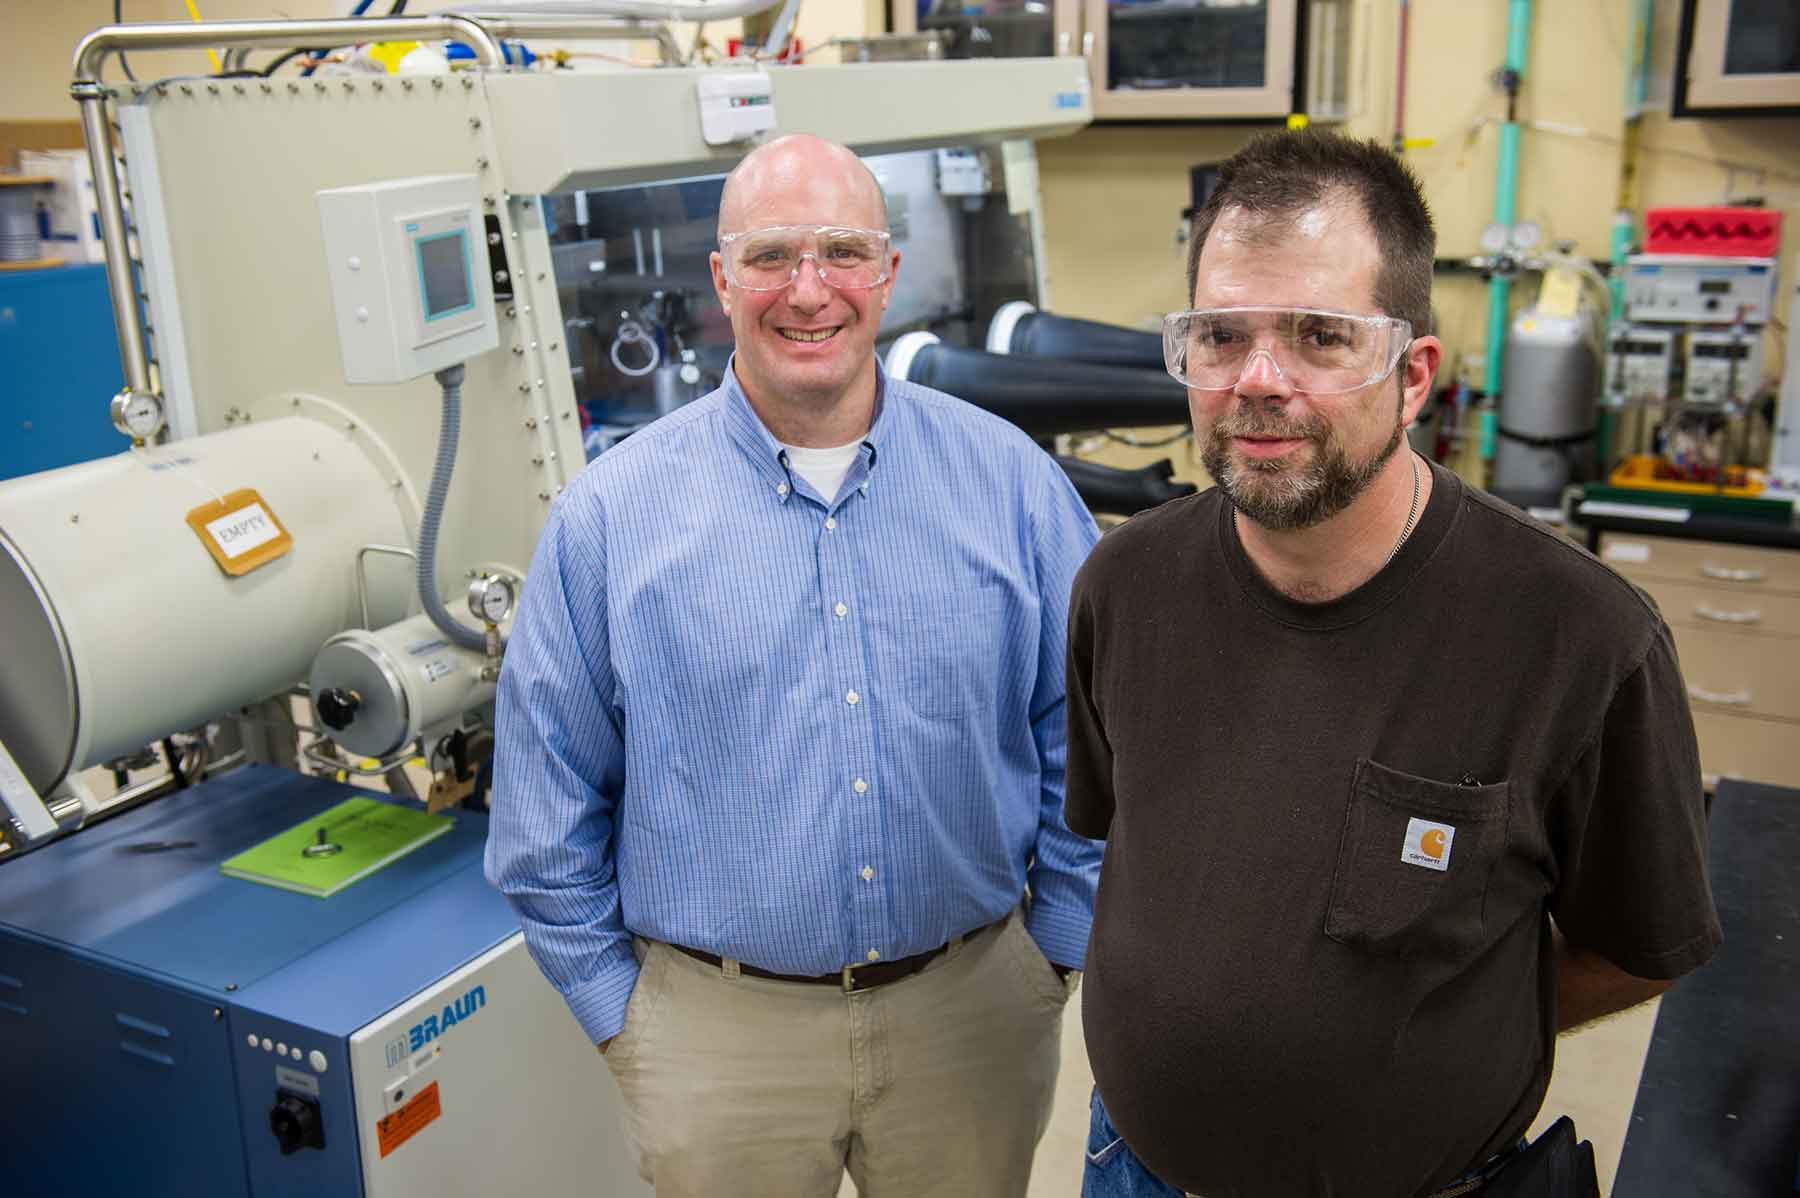 Two NREL researchers stand in a lab.